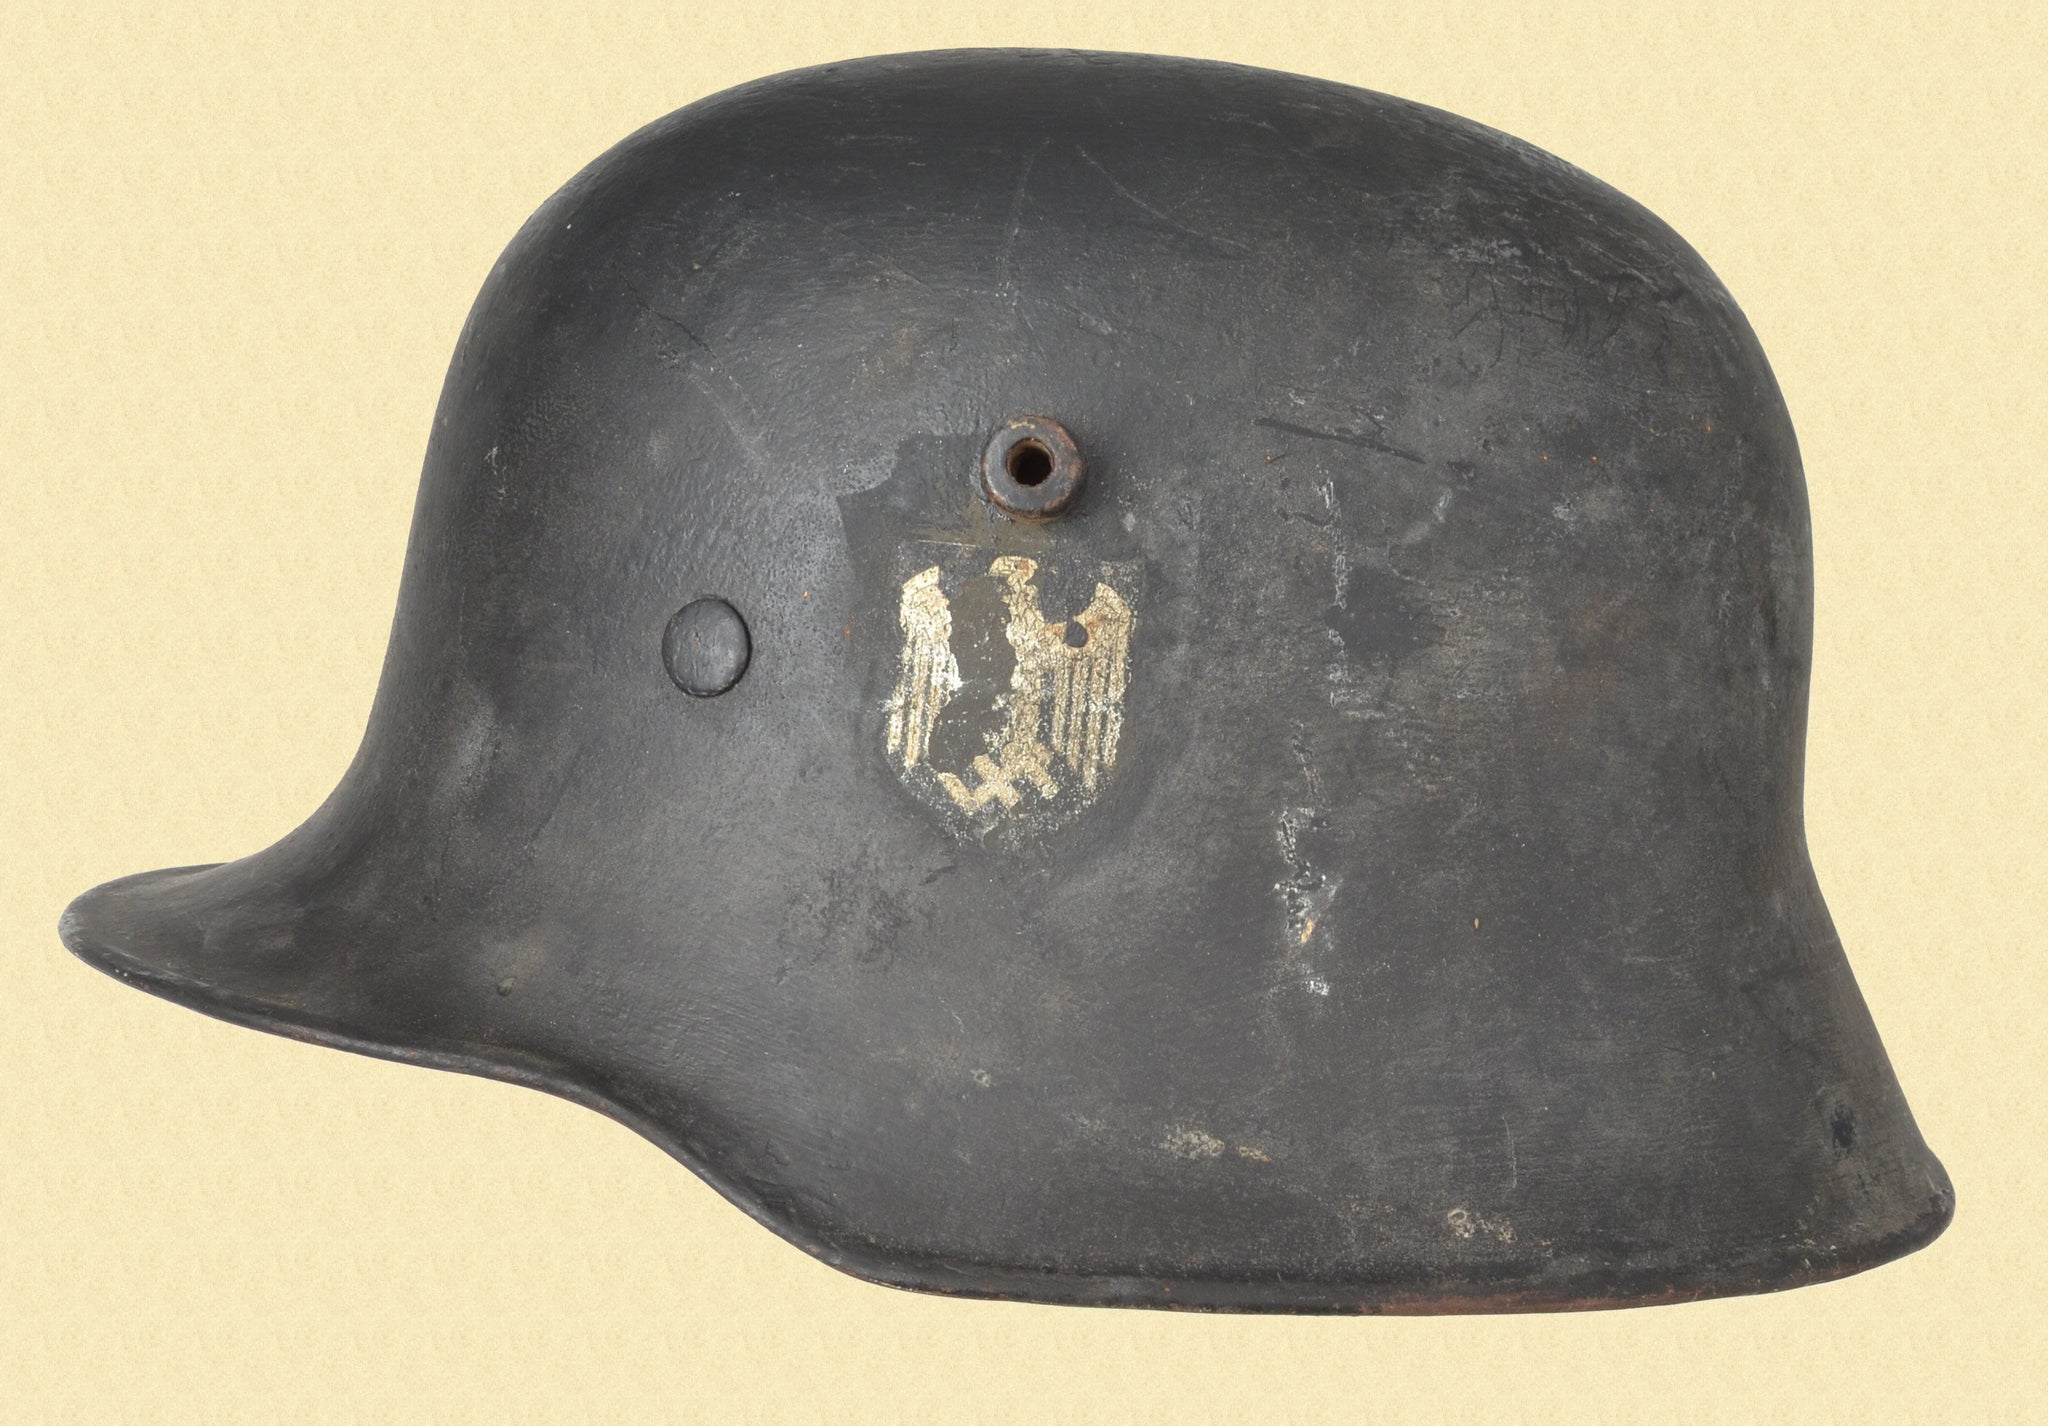 GERMANY M-18 WWI TRANSITIONAL HELMET